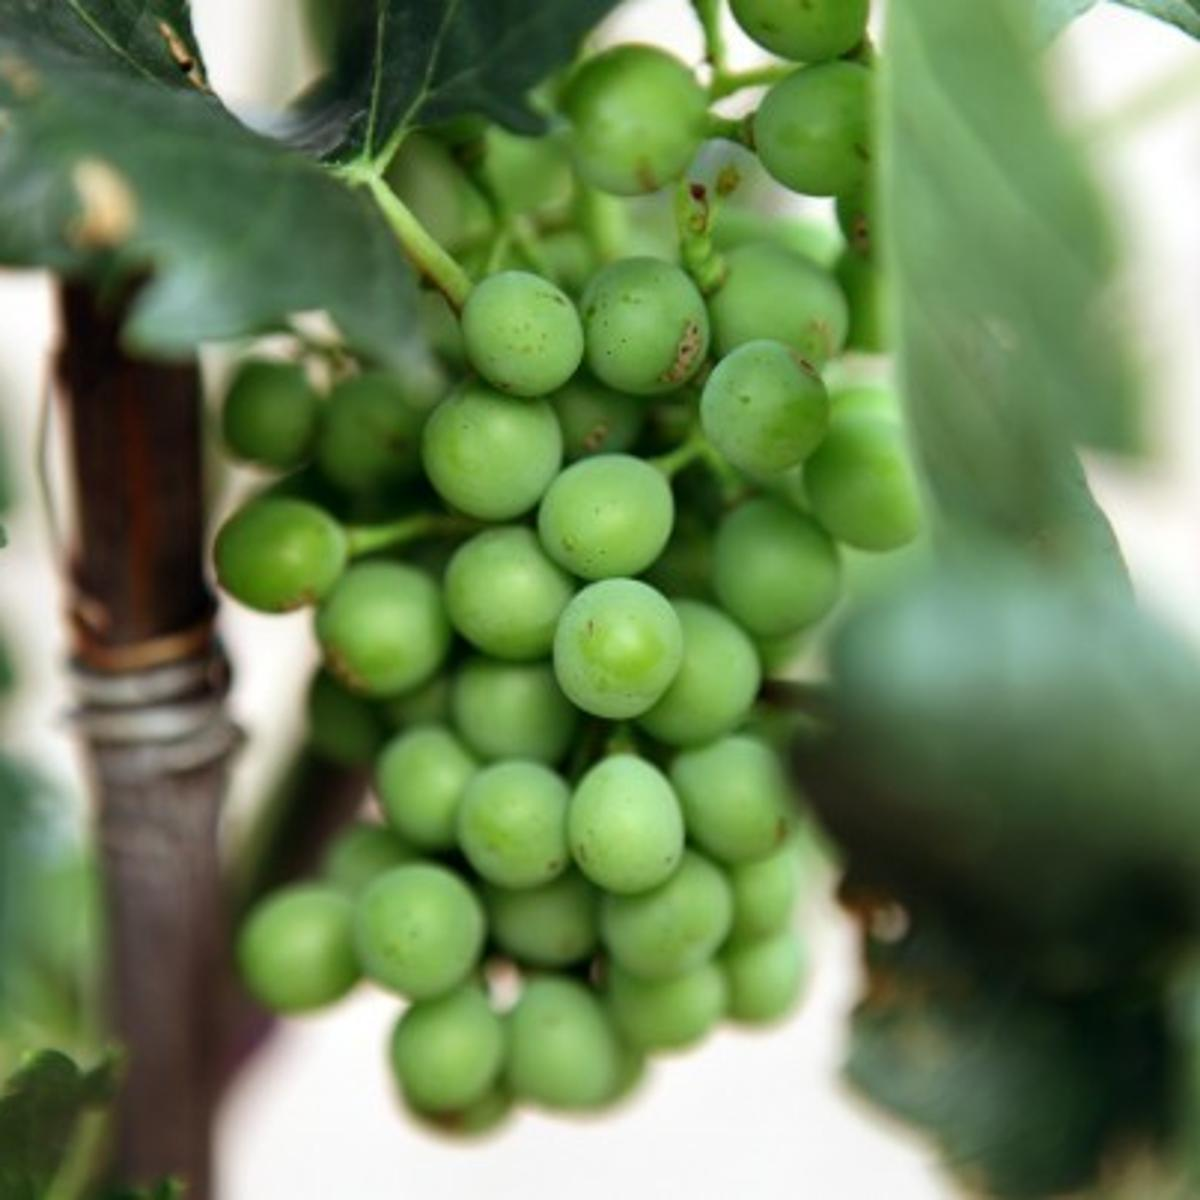 Southern Arizona Is Good Spot For Growing Grapes Tucson Com